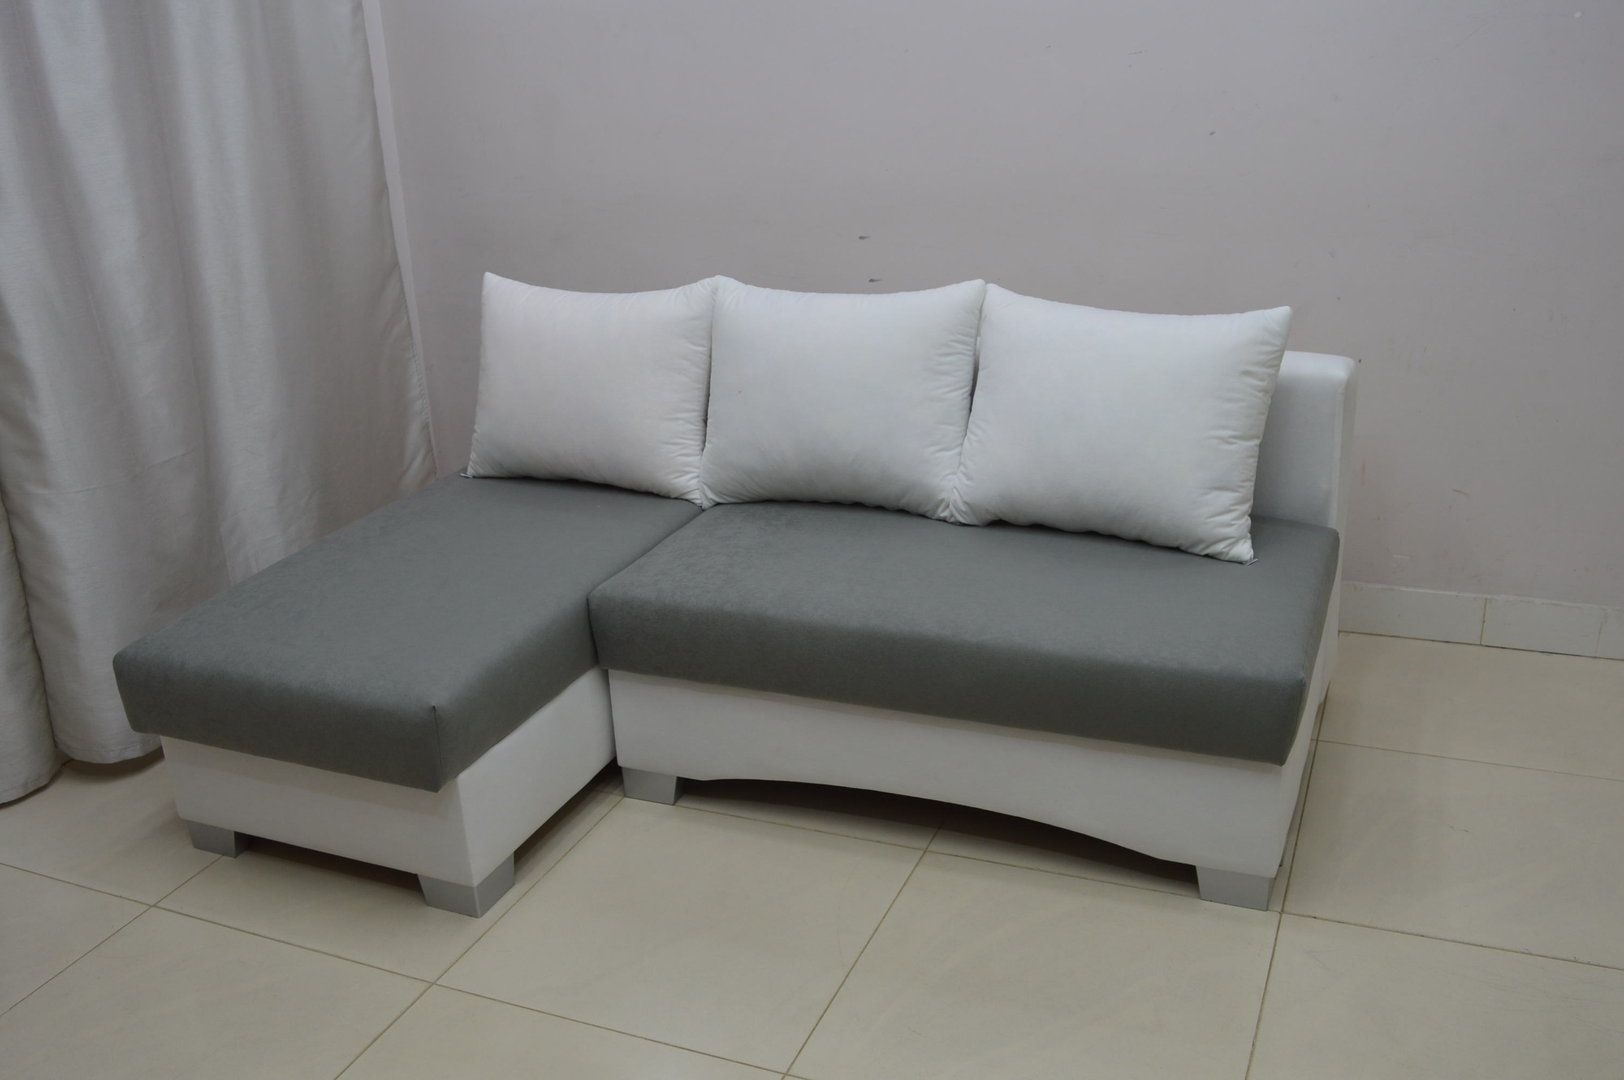 Small Corner Sofas Your Dream Pieces To Save Space With Elegance